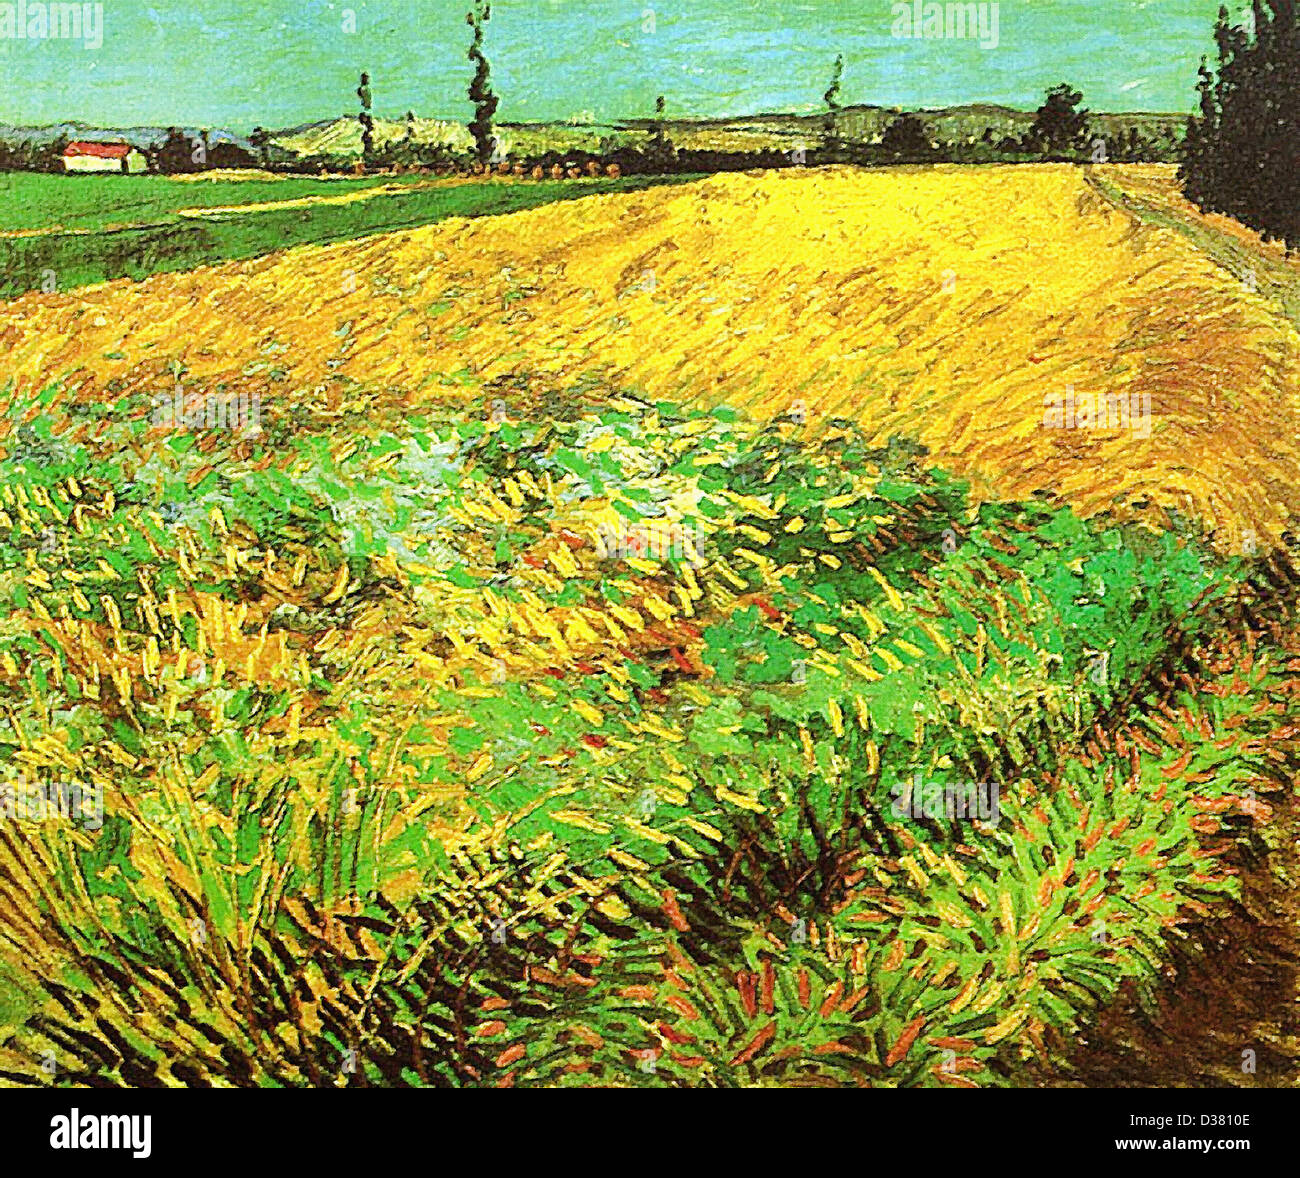 Vincent van Gogh, Wheat Field with the Alpilles Foothills in the Background. 1888. Post-Impressionism. Oil on canvas. - Stock Image